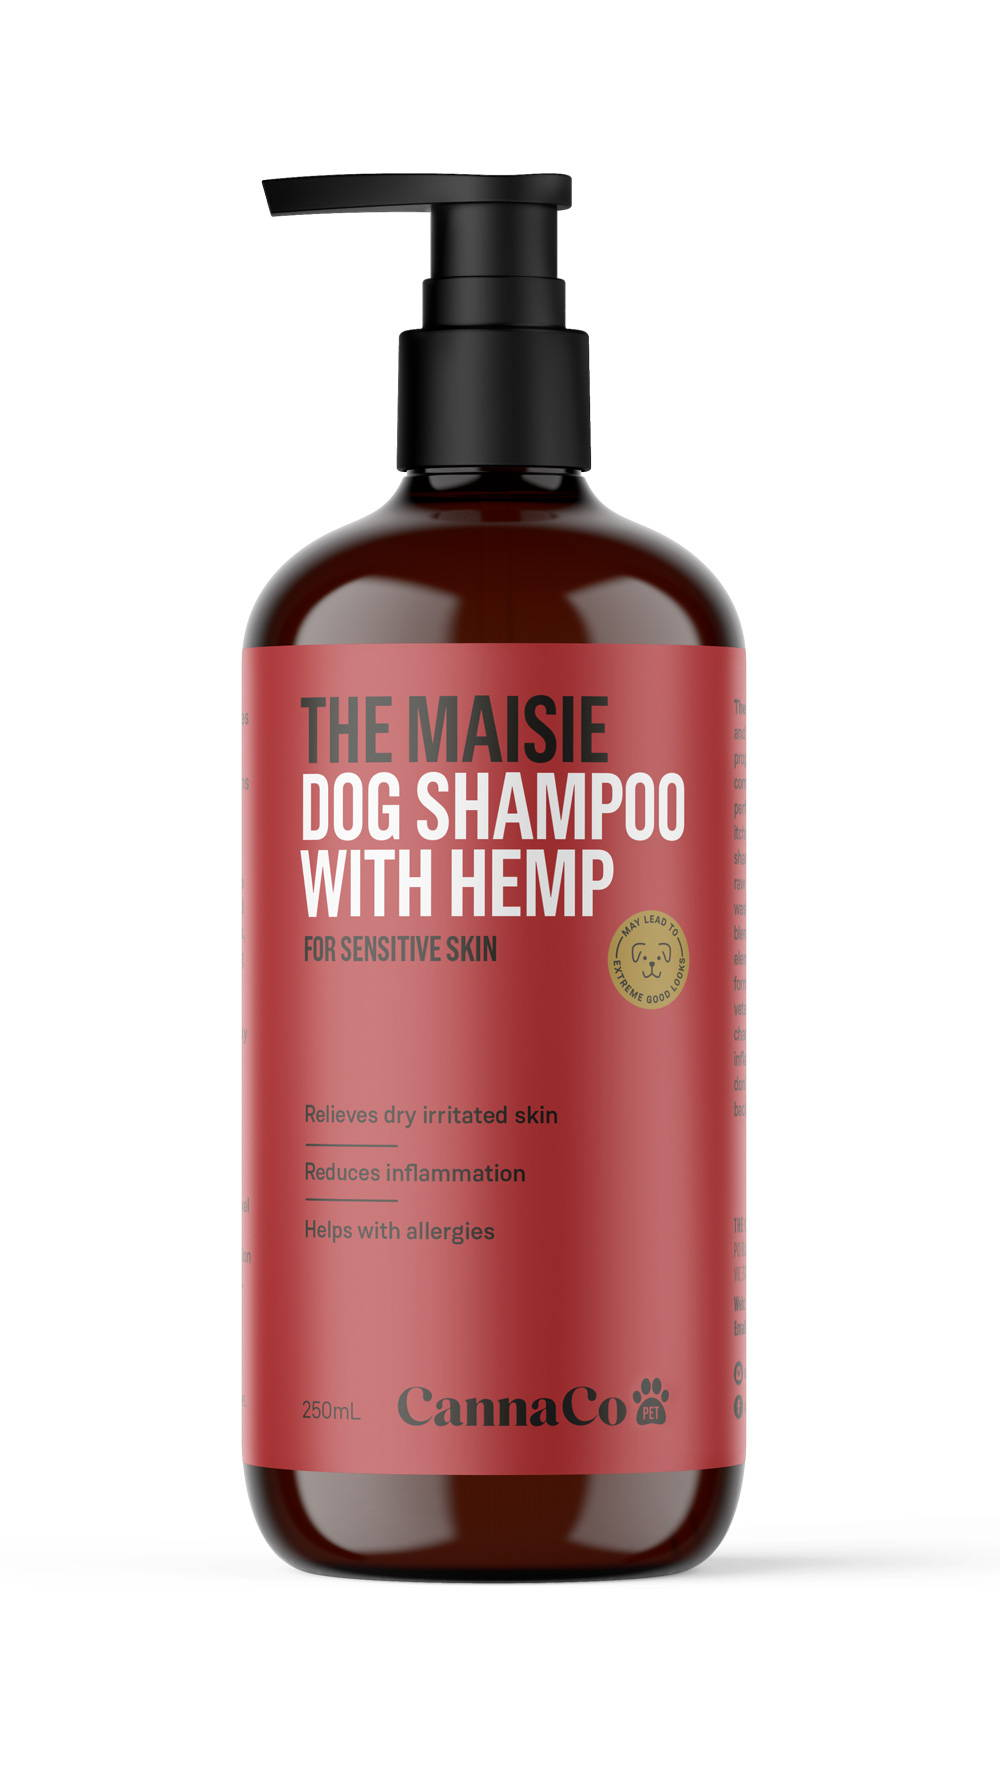 The Maisie – Dog Shampoo with Hemp for Sensitive Skin